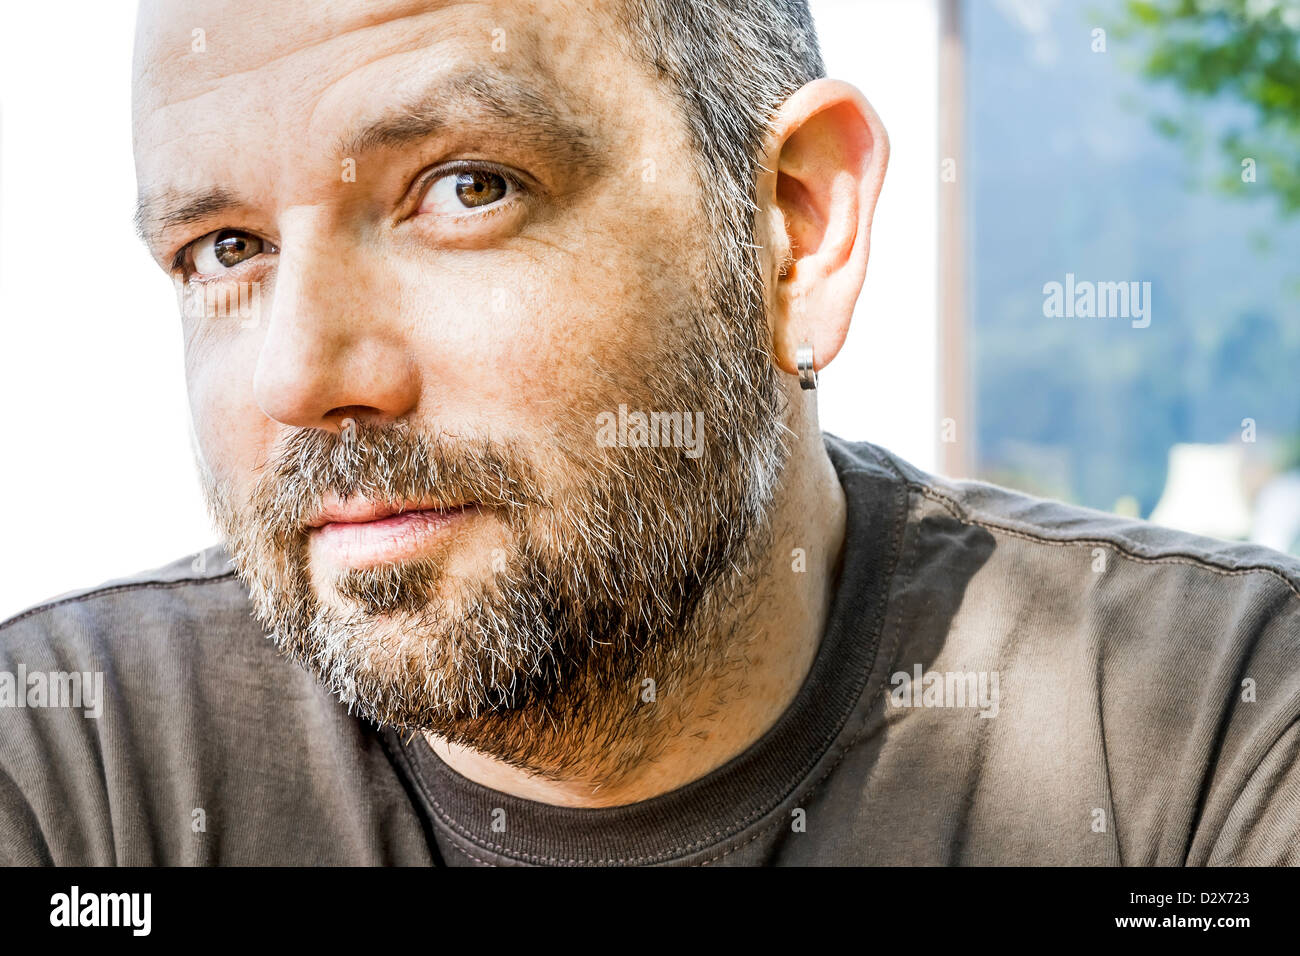 An image of a handsome man with a beard - Stock Image